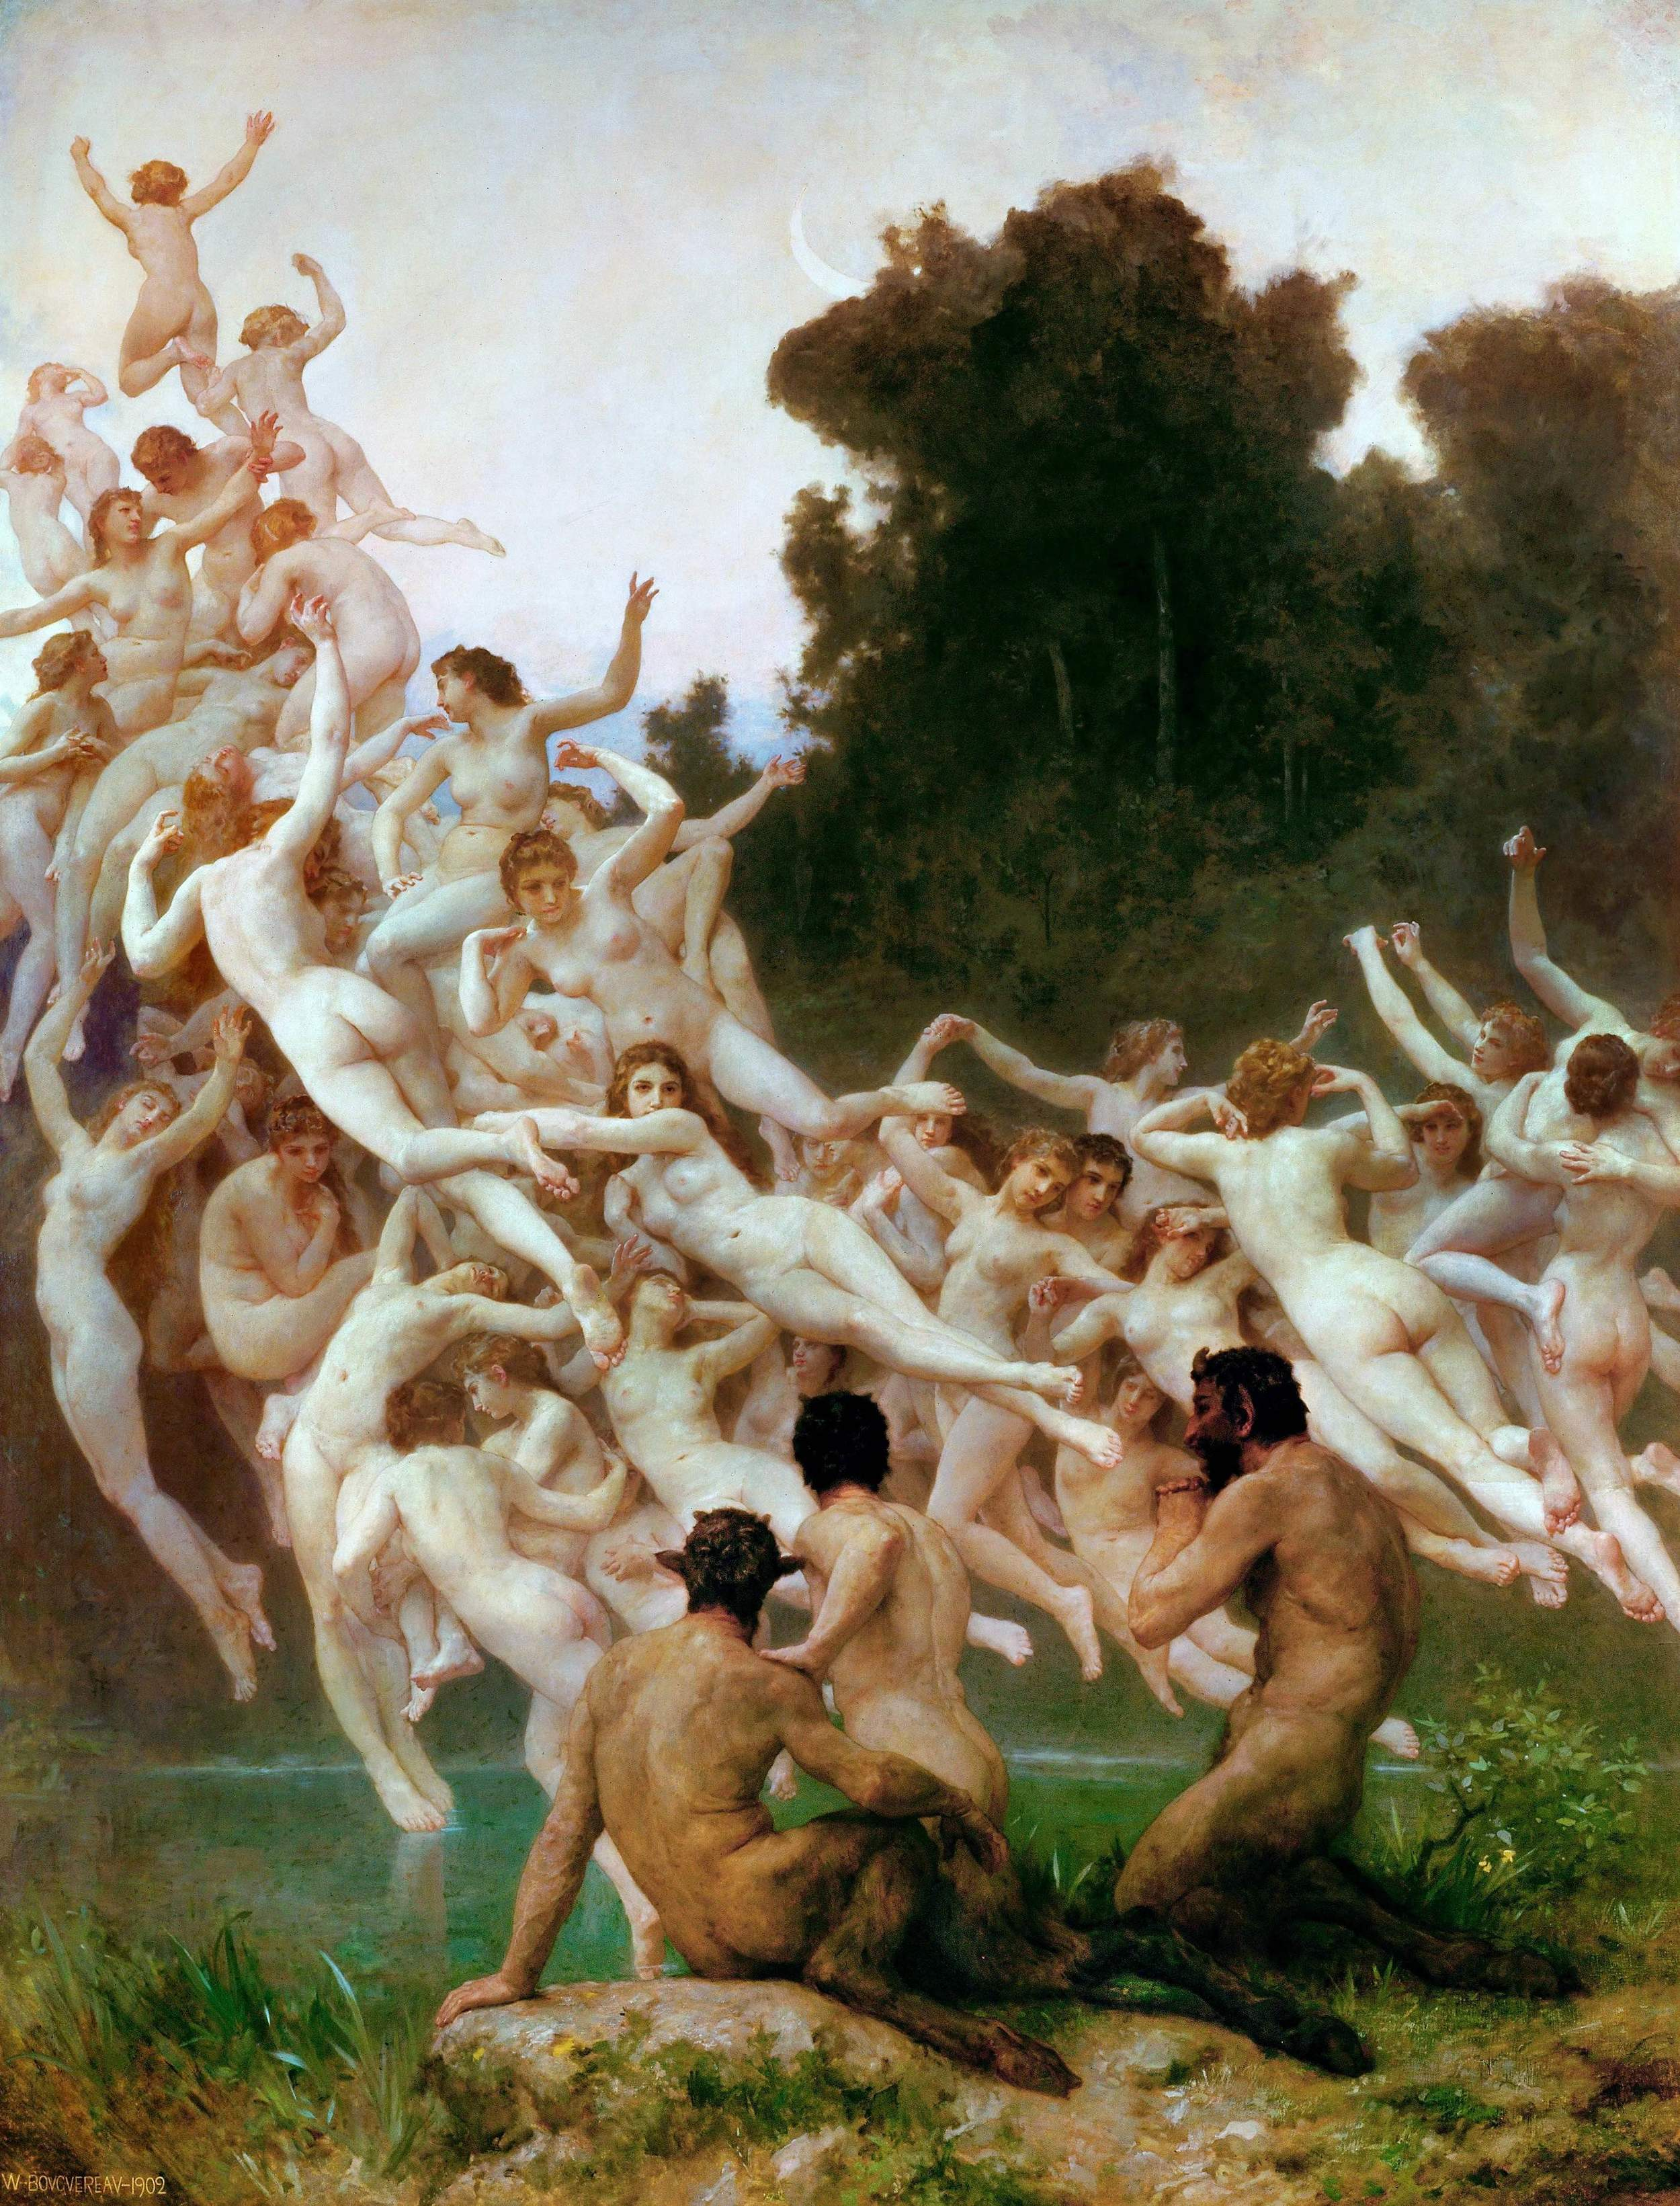 """The Downfall of the Æsir. The heavens split and the """"Sons of Múspell"""" ride forth upon the Æsir at Ragnarök as described in Gylfaginning chapter 51. By Karl Ehrenberg, 1882. (Wikimedia Commons) / Les Oréades, 1902, by William Bouguereau, in the Musés d'Orsay (Wikimedia Commons)"""